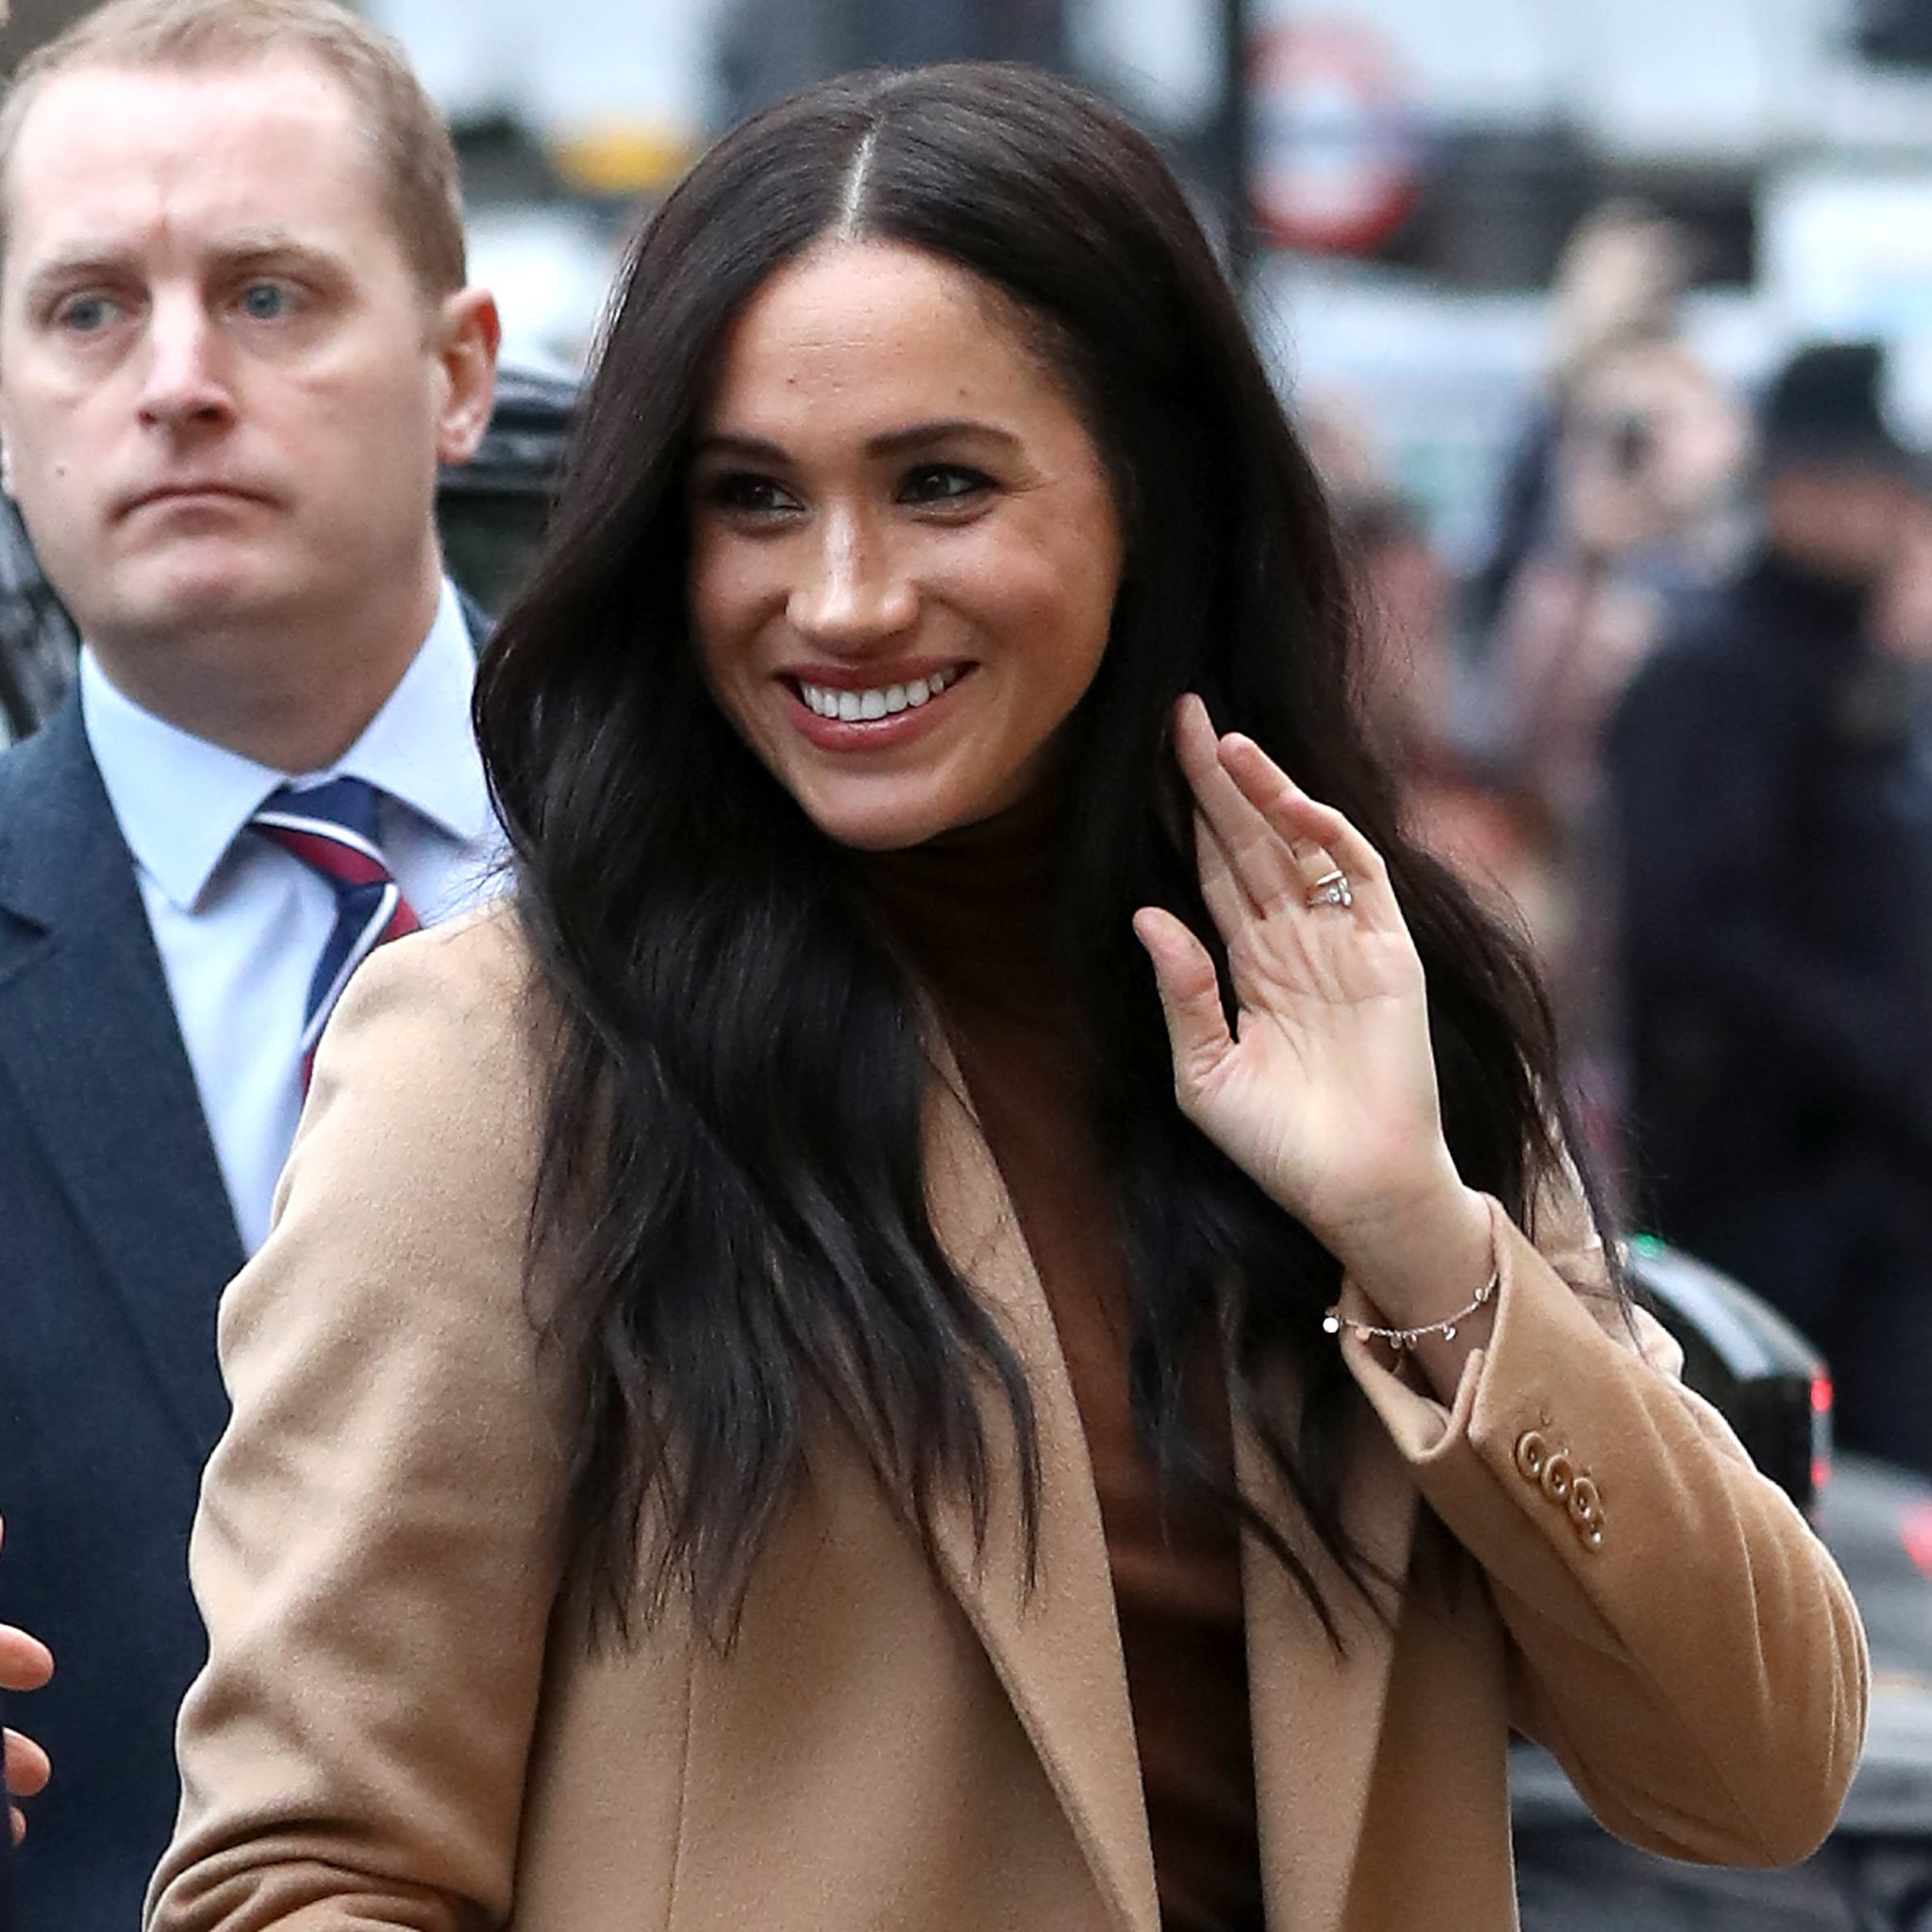 meghan markle s quotes about voting and the 2020 election popsugar celebrity meghan markle s quotes about voting and